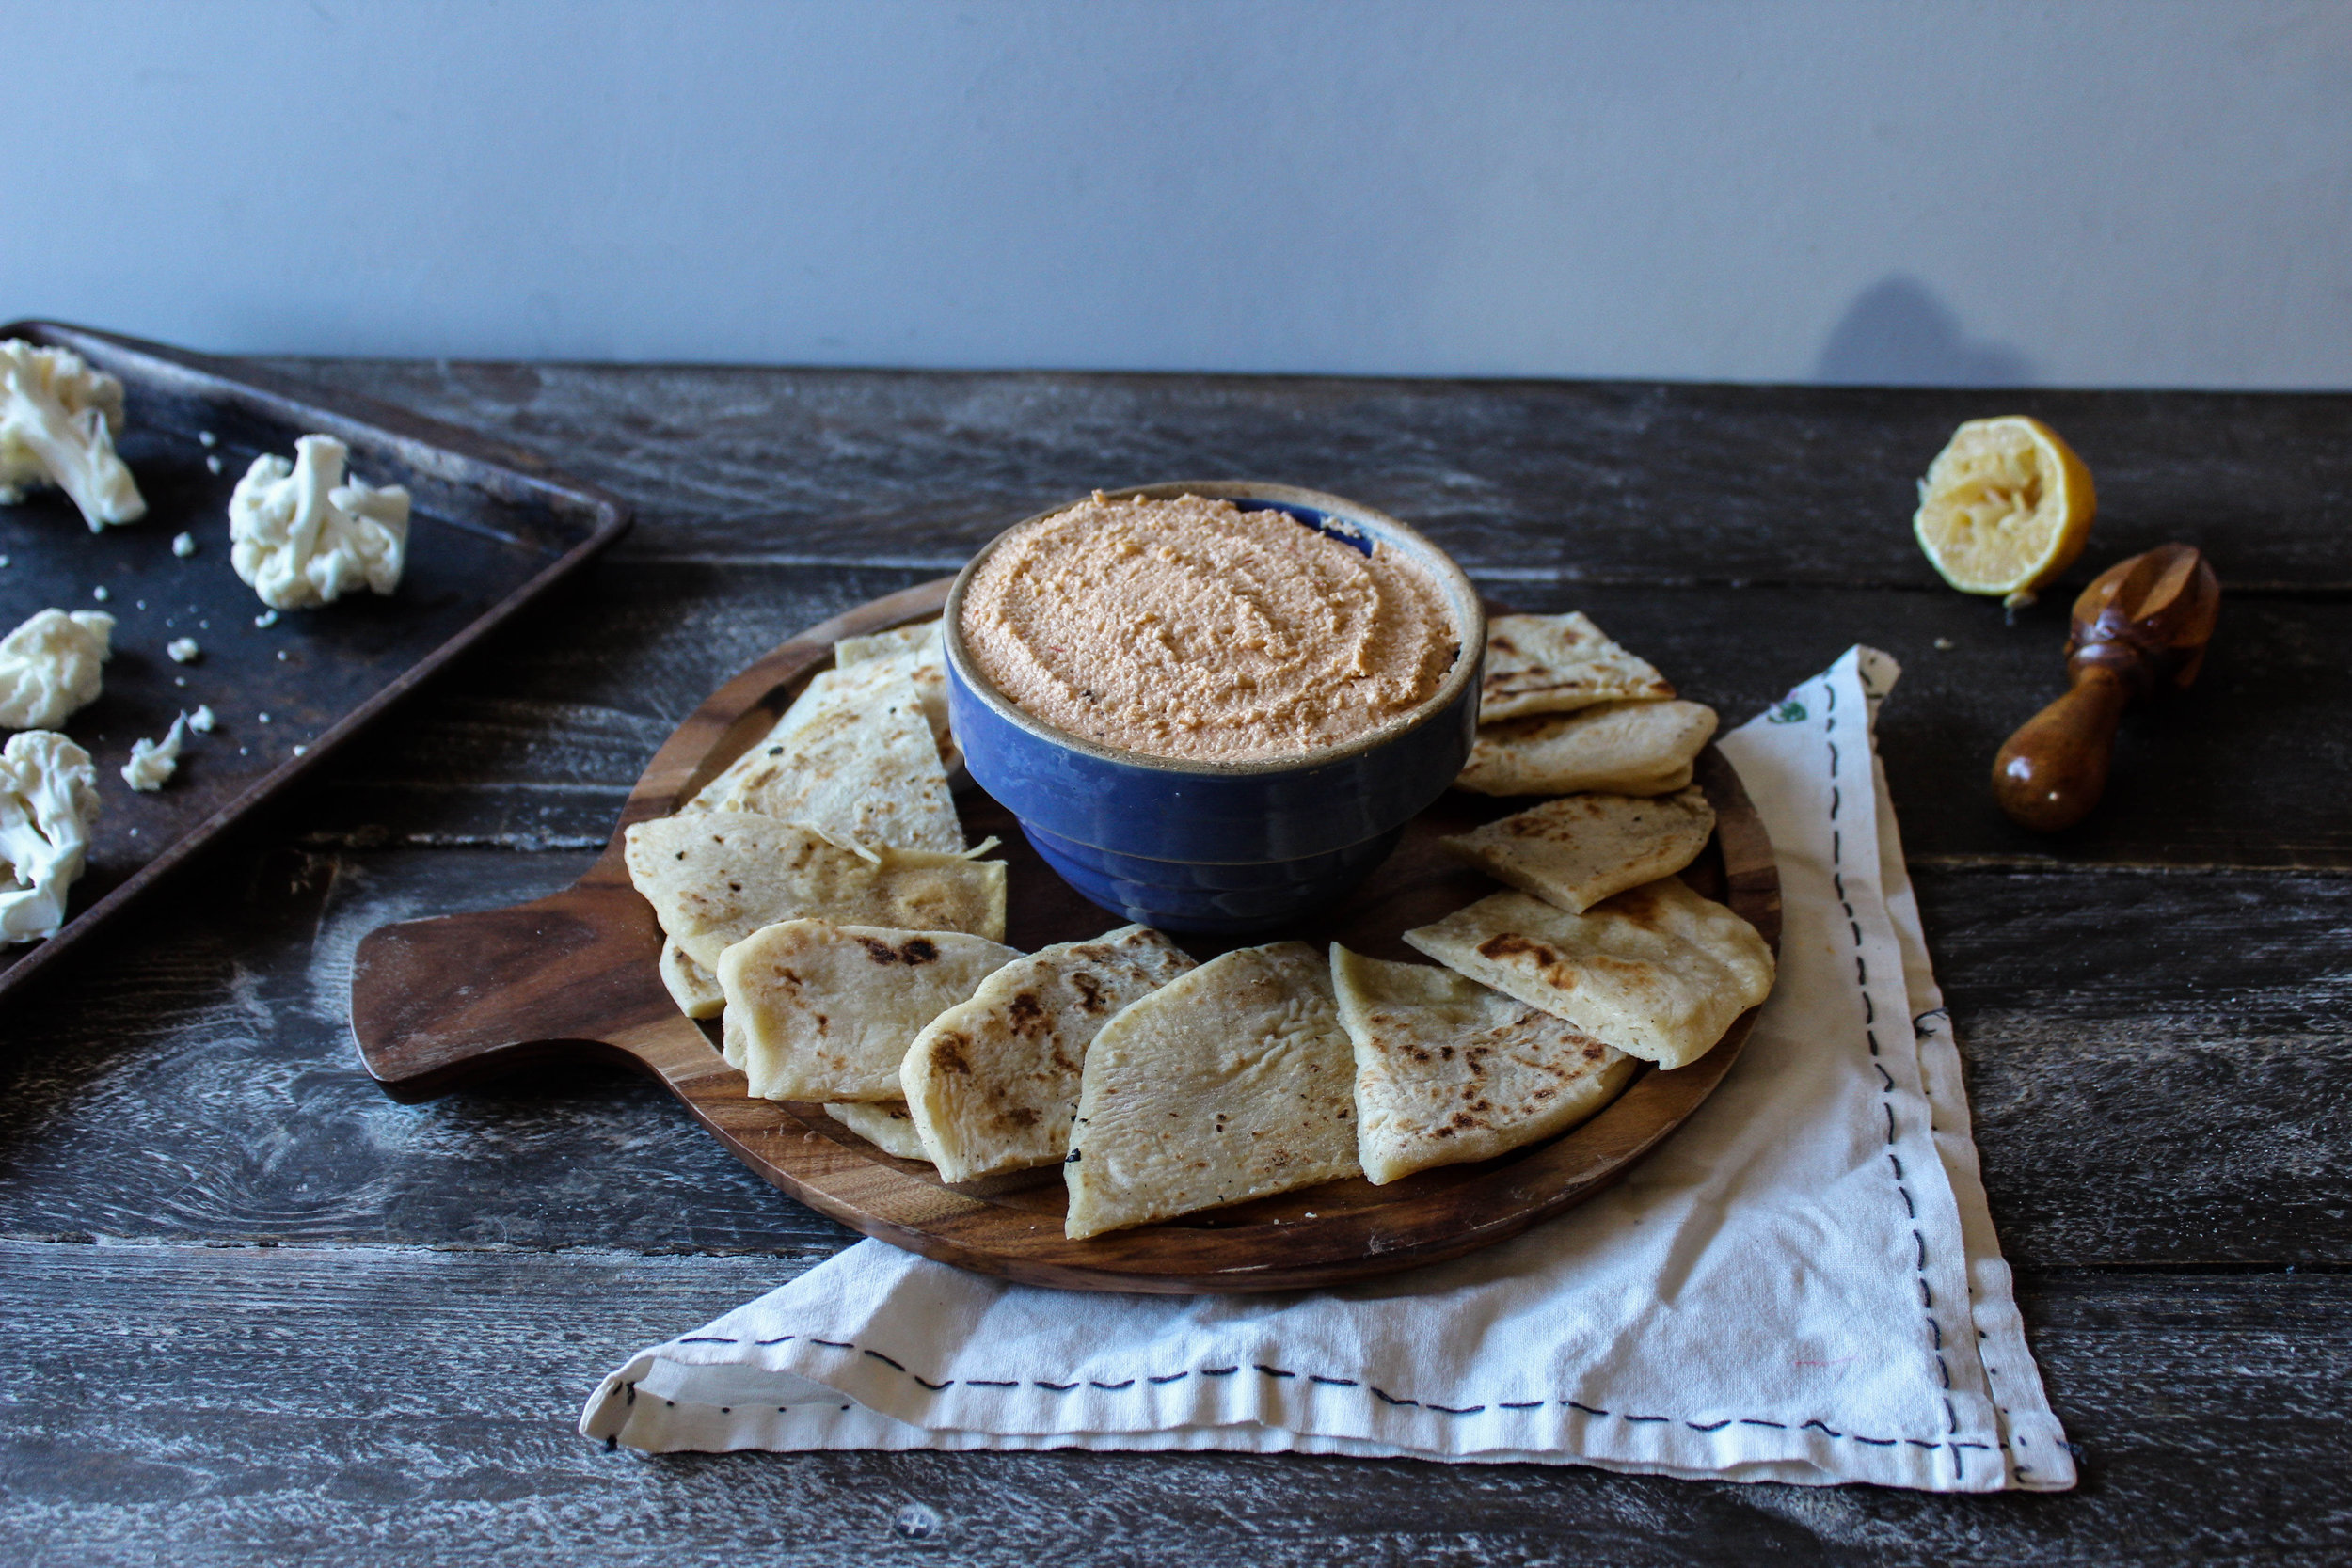 Cauliflower and Harissa Hummus